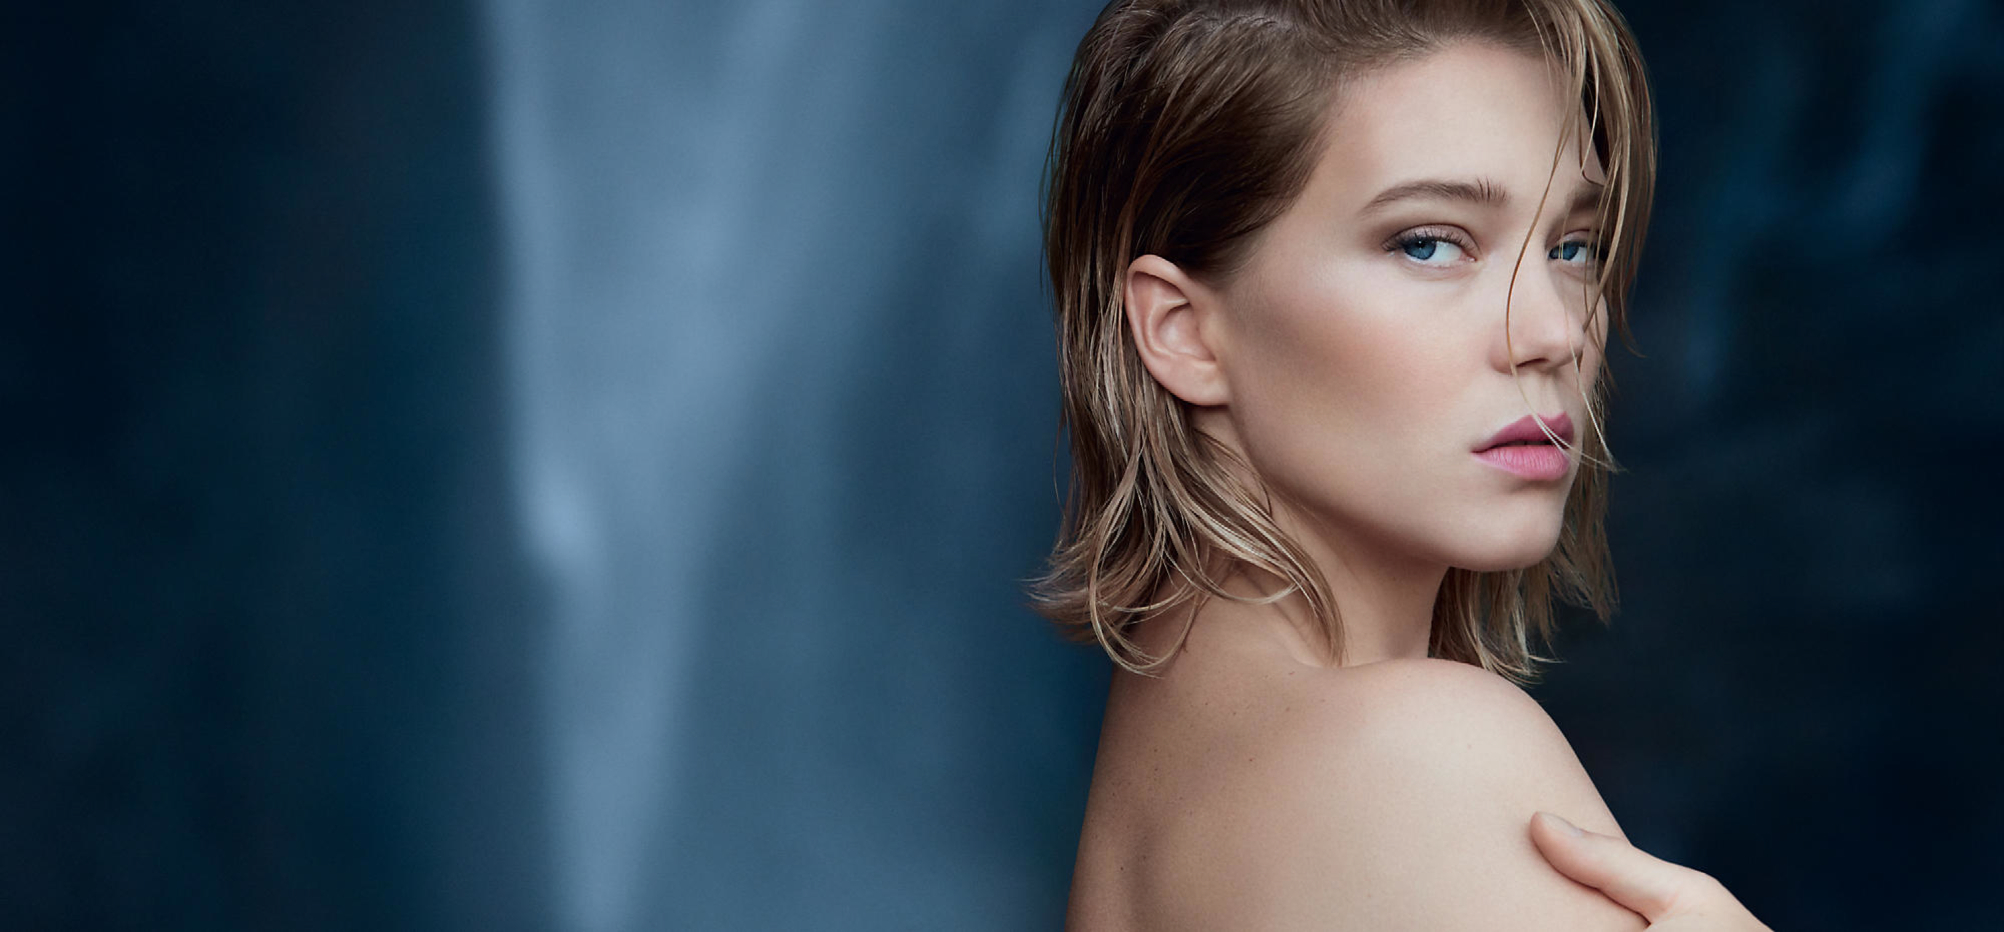 Louis Vuitton Perfume Ad Campaign Featuring Lea Seydoux 3